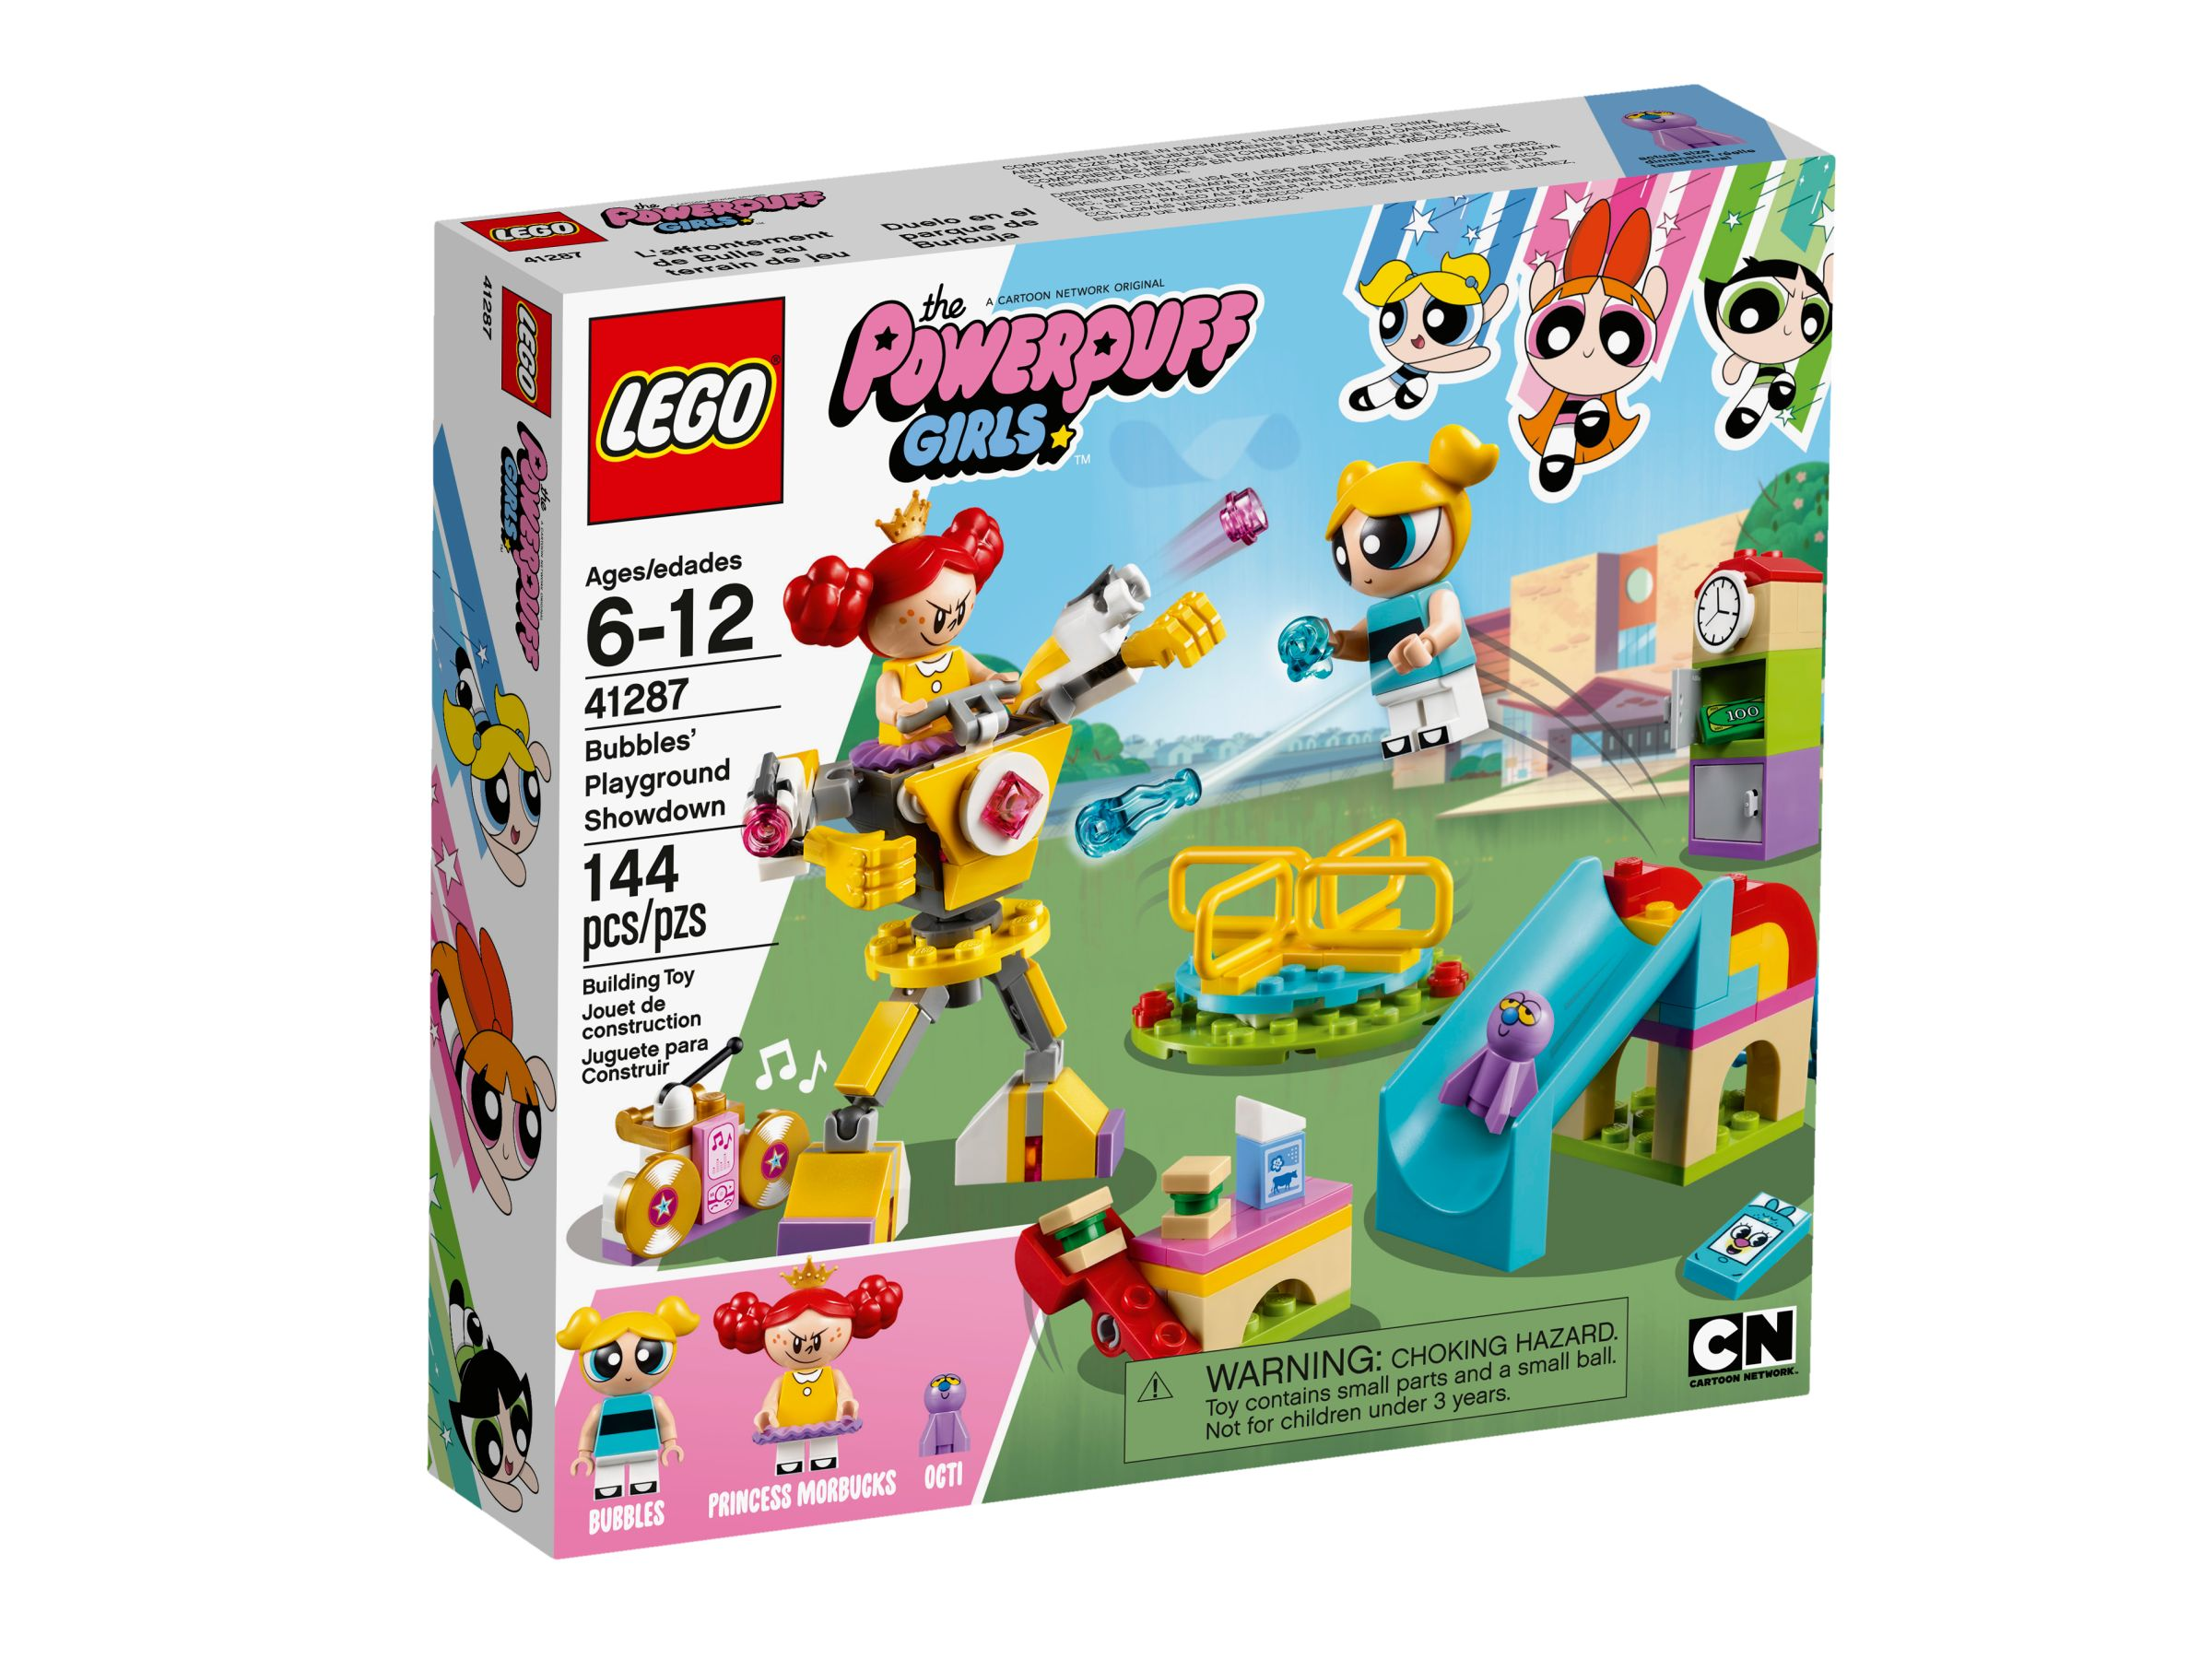 LEGO The Powerpuff Girls 41287 Bubbles' Spielplatzabenteuer LEGO_41287_alt1.jpg